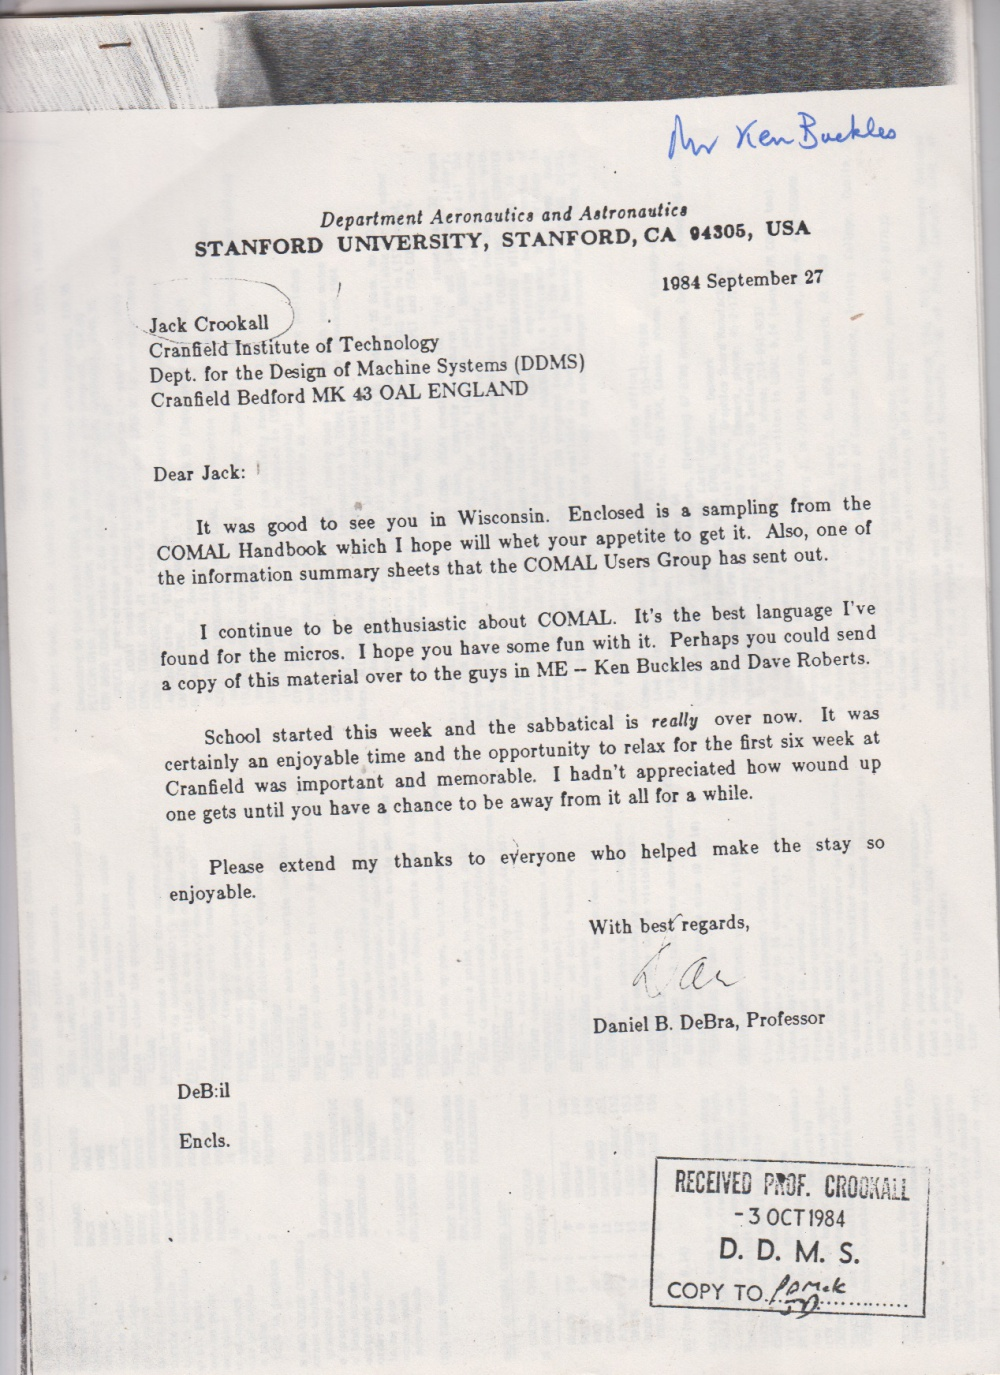 Scan of Document: A Letter From The Department Of Aeronautics and Astronautics